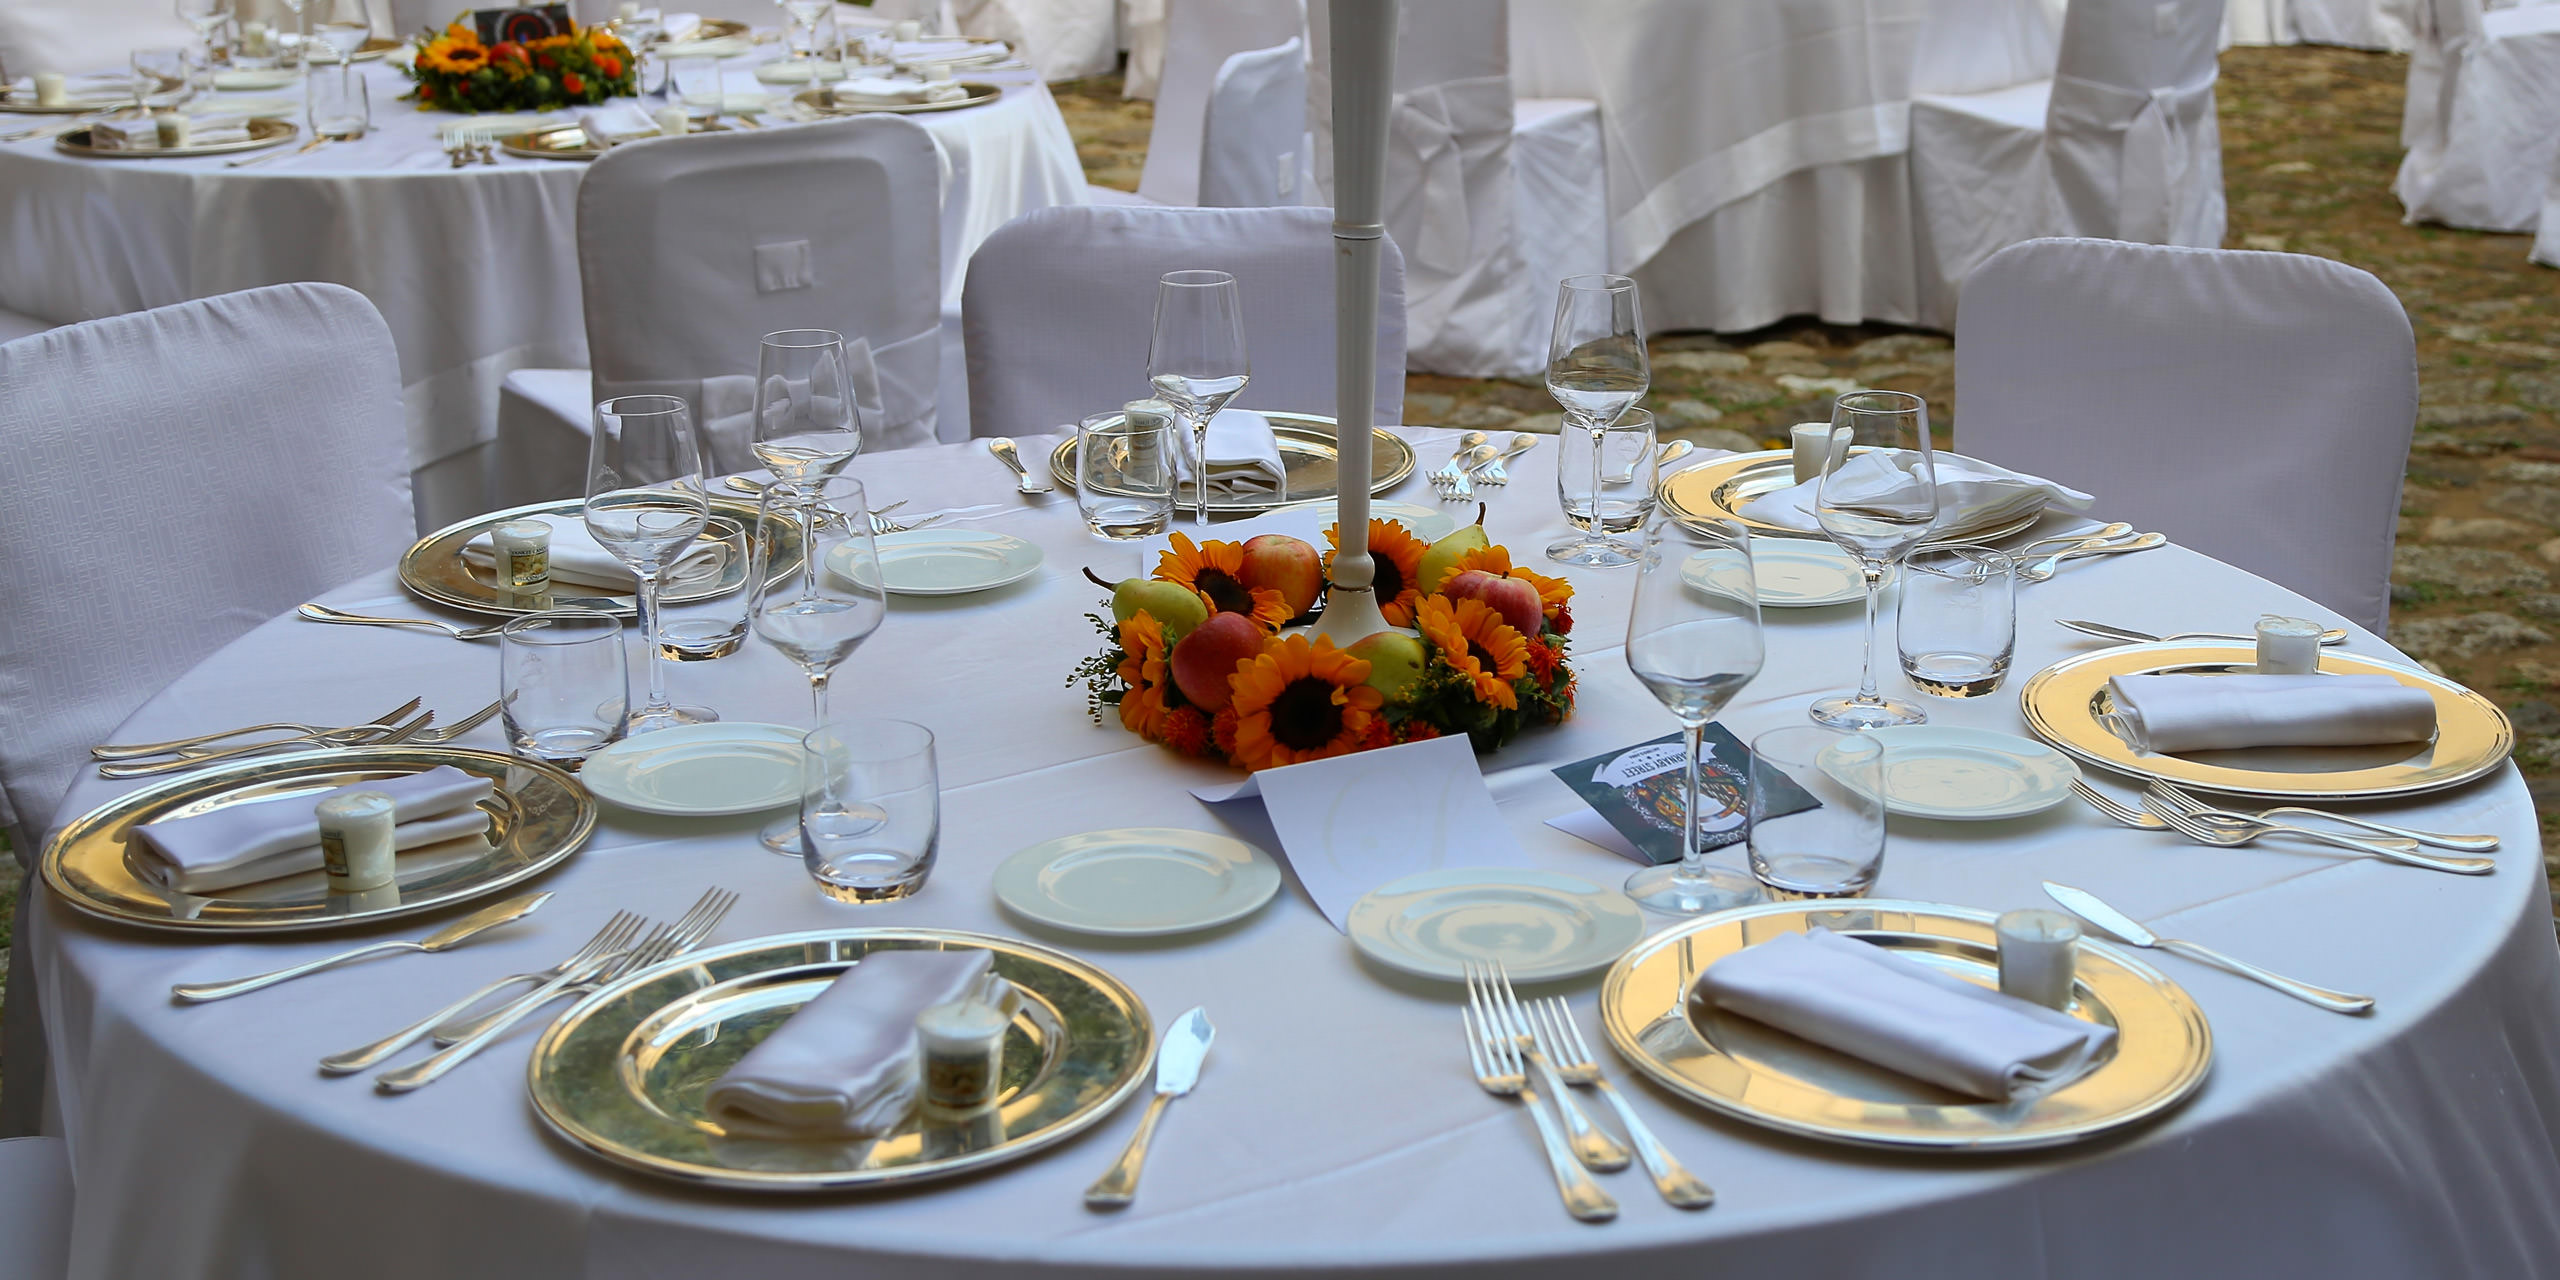 Equipment rental for events and ceremonies in Calabria. Lo Schiavo Catering e Banqueting.